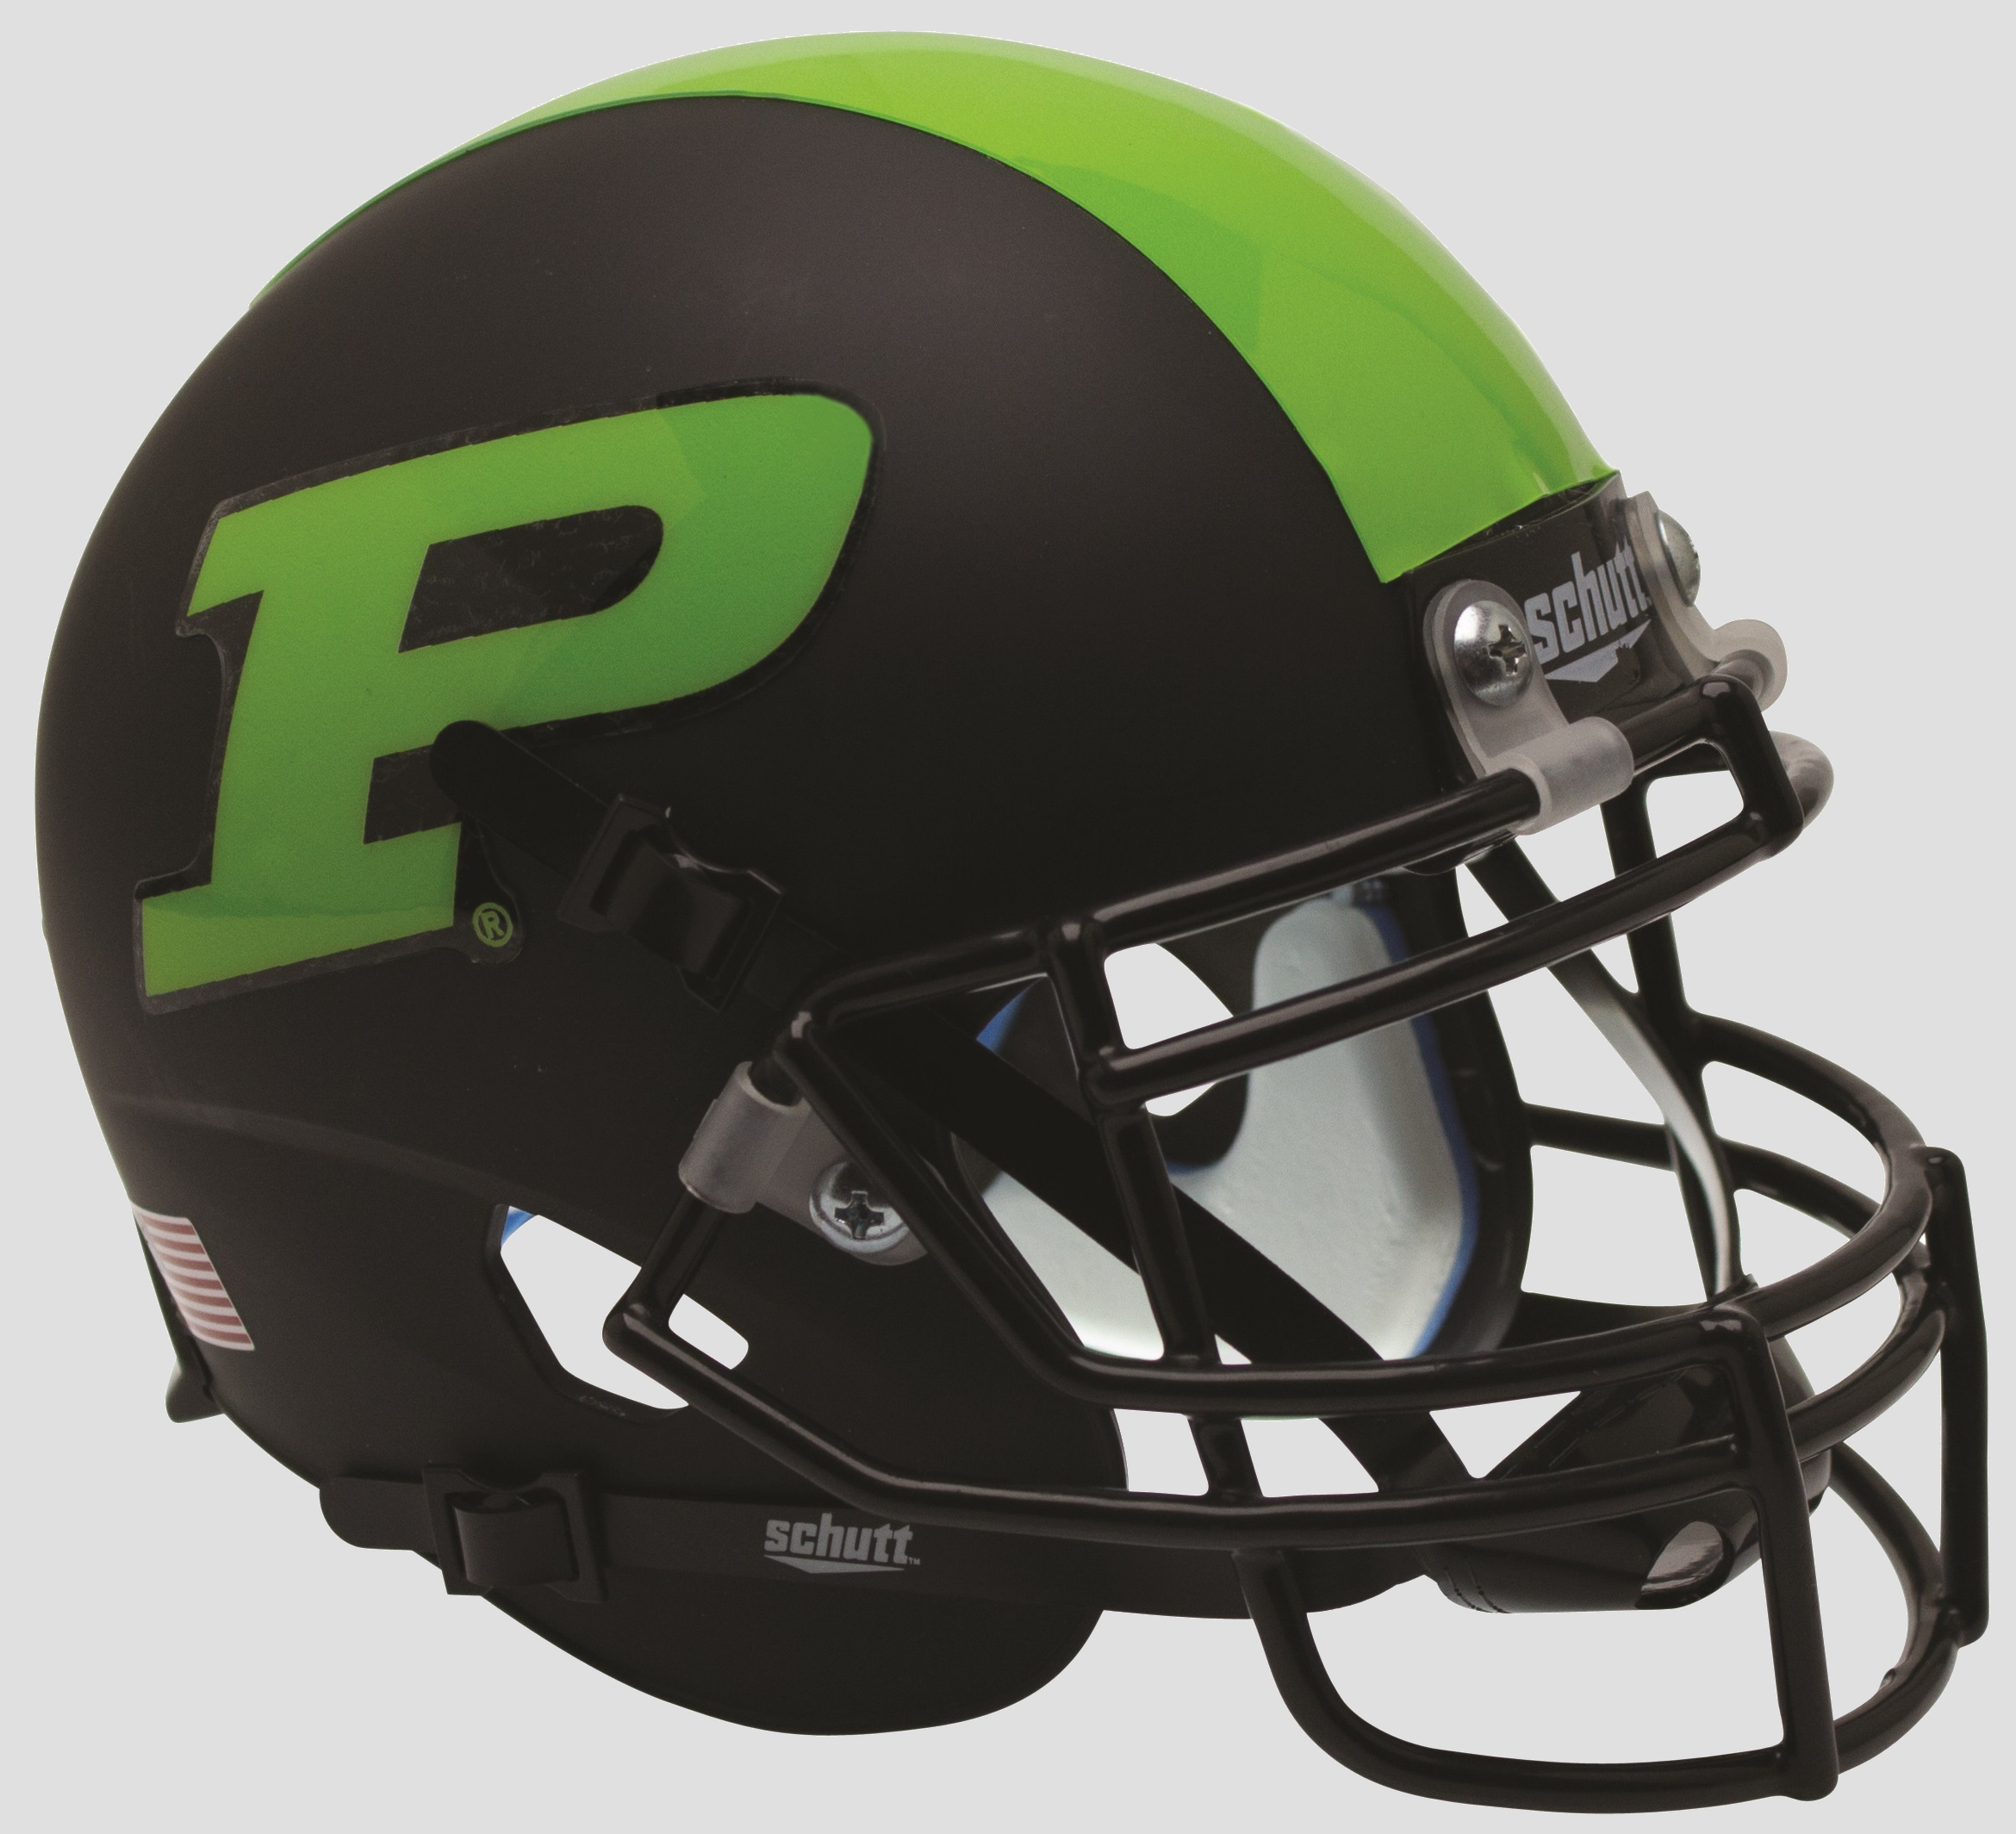 Purdue Boilermakers Authentic College XP Football Helmet Schutt <B>Green Stripe</B>